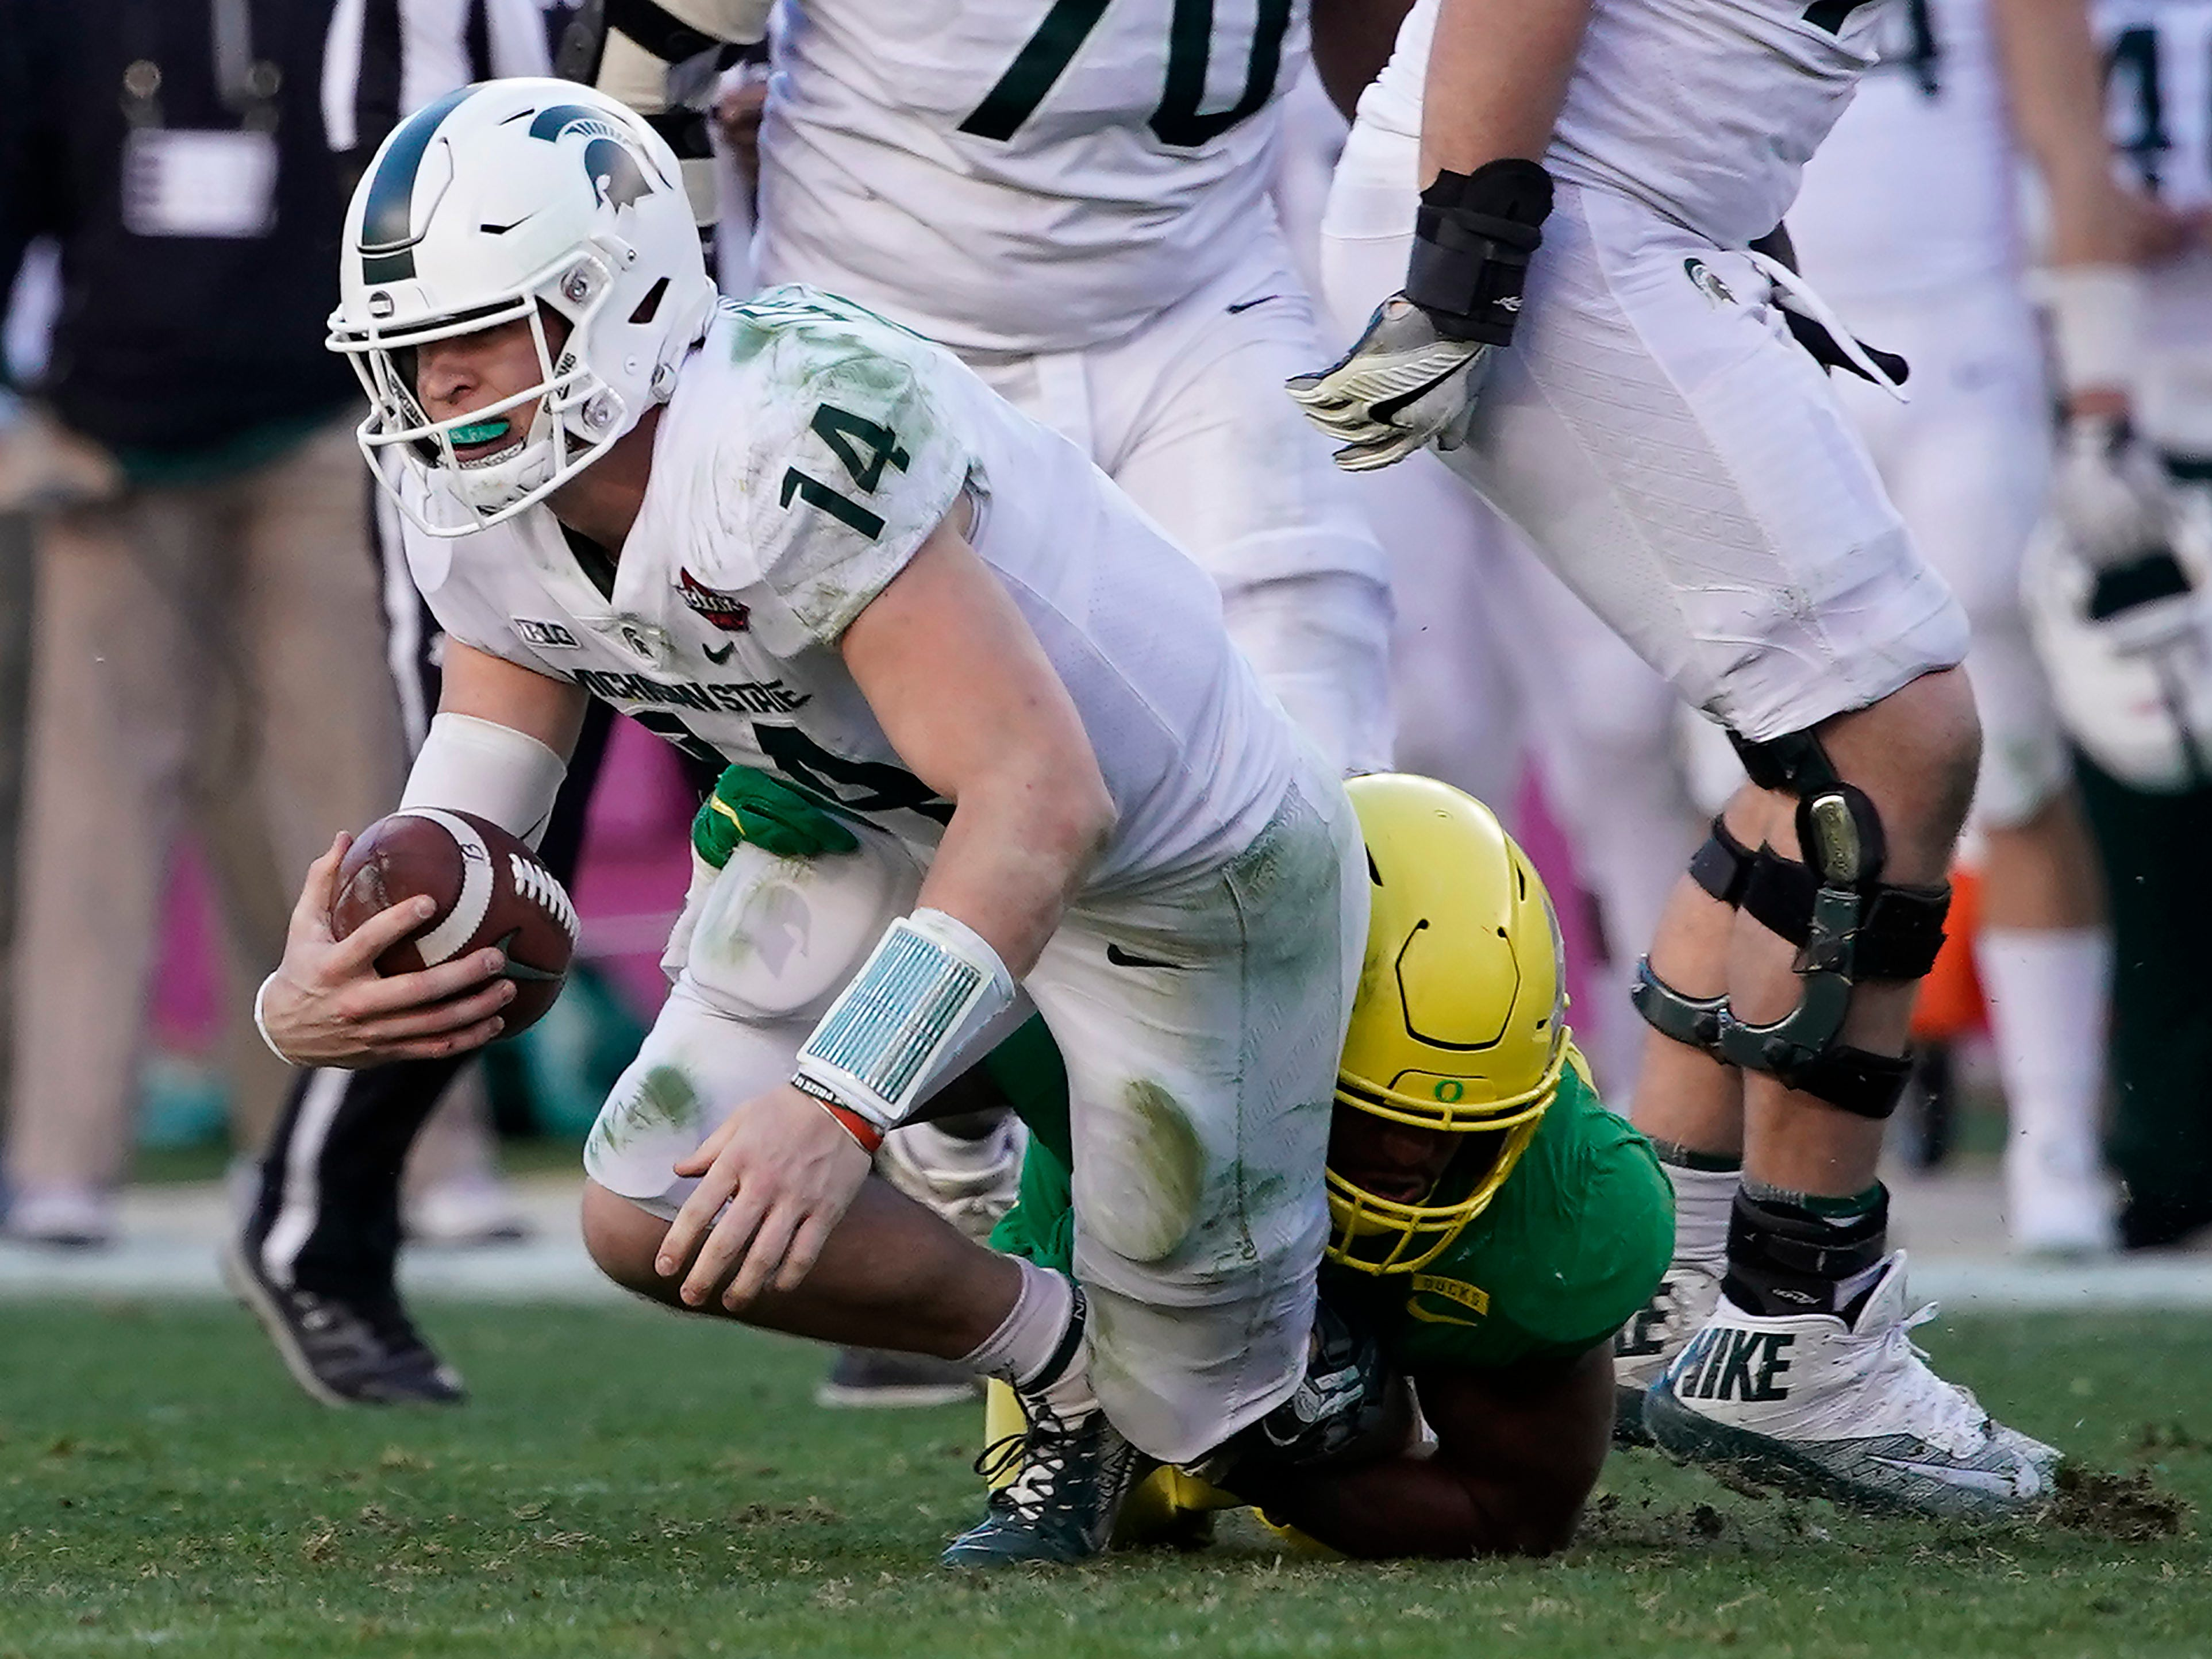 Michigan State quarterback Brian Lewerke (14) is sacked by Oregon linebacker Justin Hollins (11) during the second half of the Redbox Bowl NCAA college football game Monday, Dec. 31, 2018, in Santa Clara, Calif.